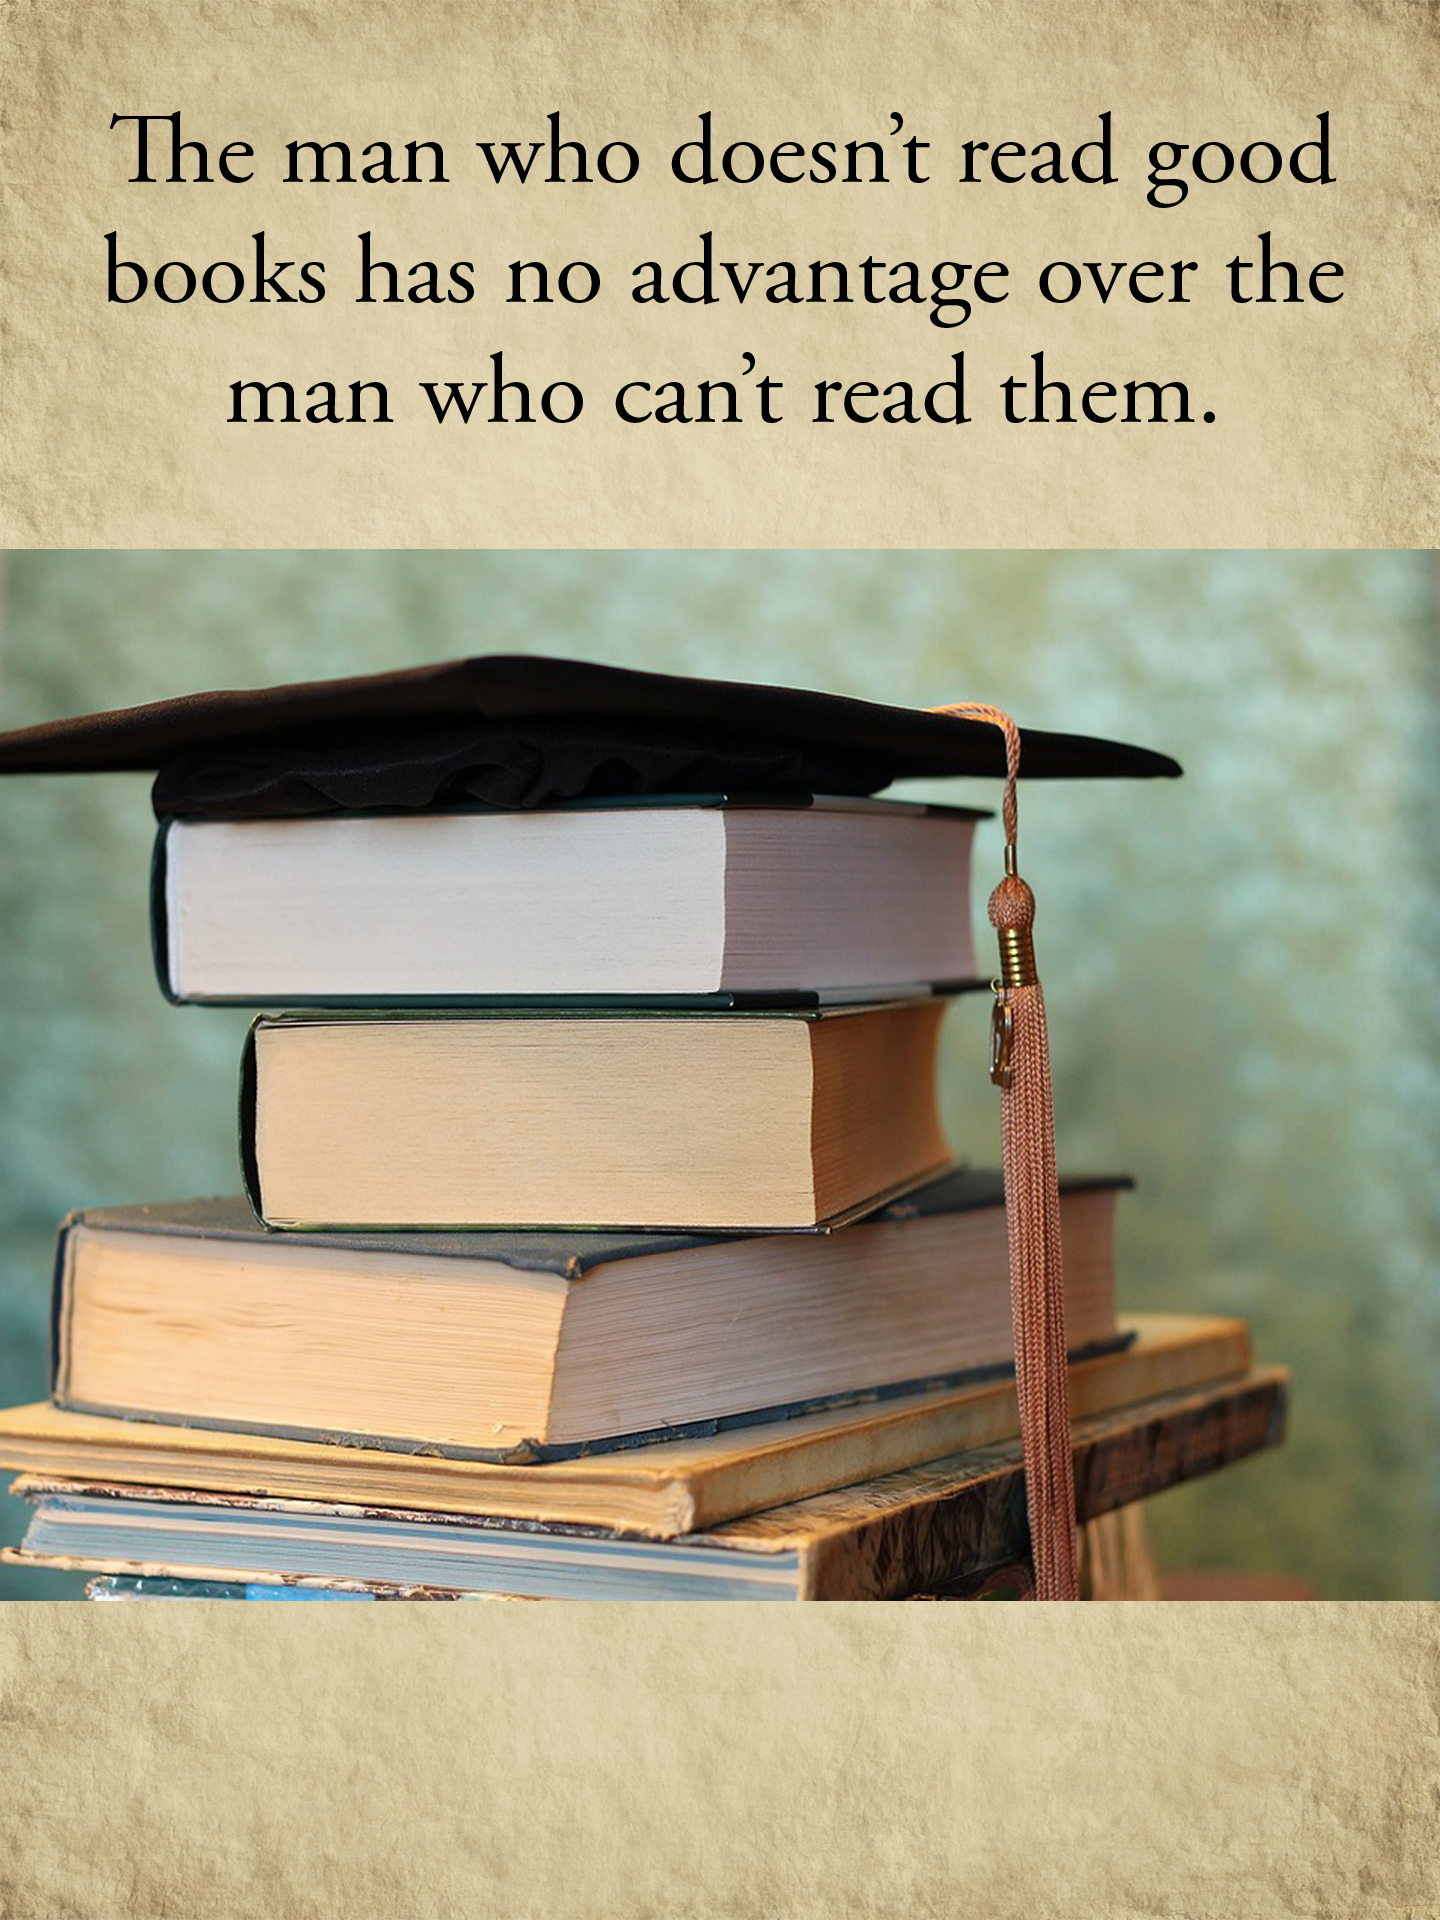 Books and Cap